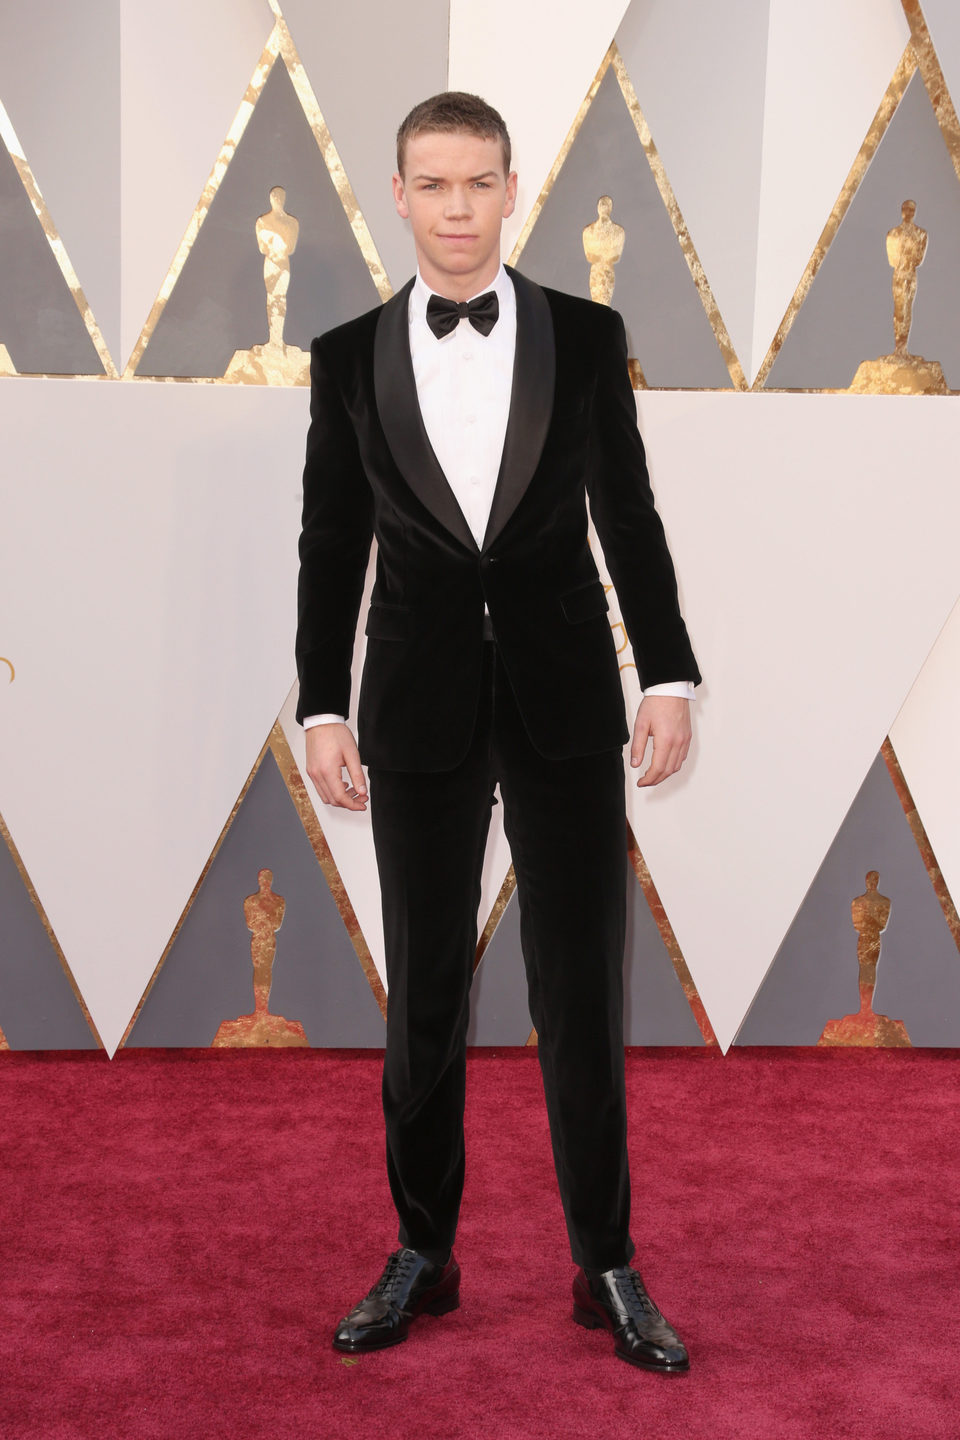 Will Poulter at the Oscars 2016 red carpet